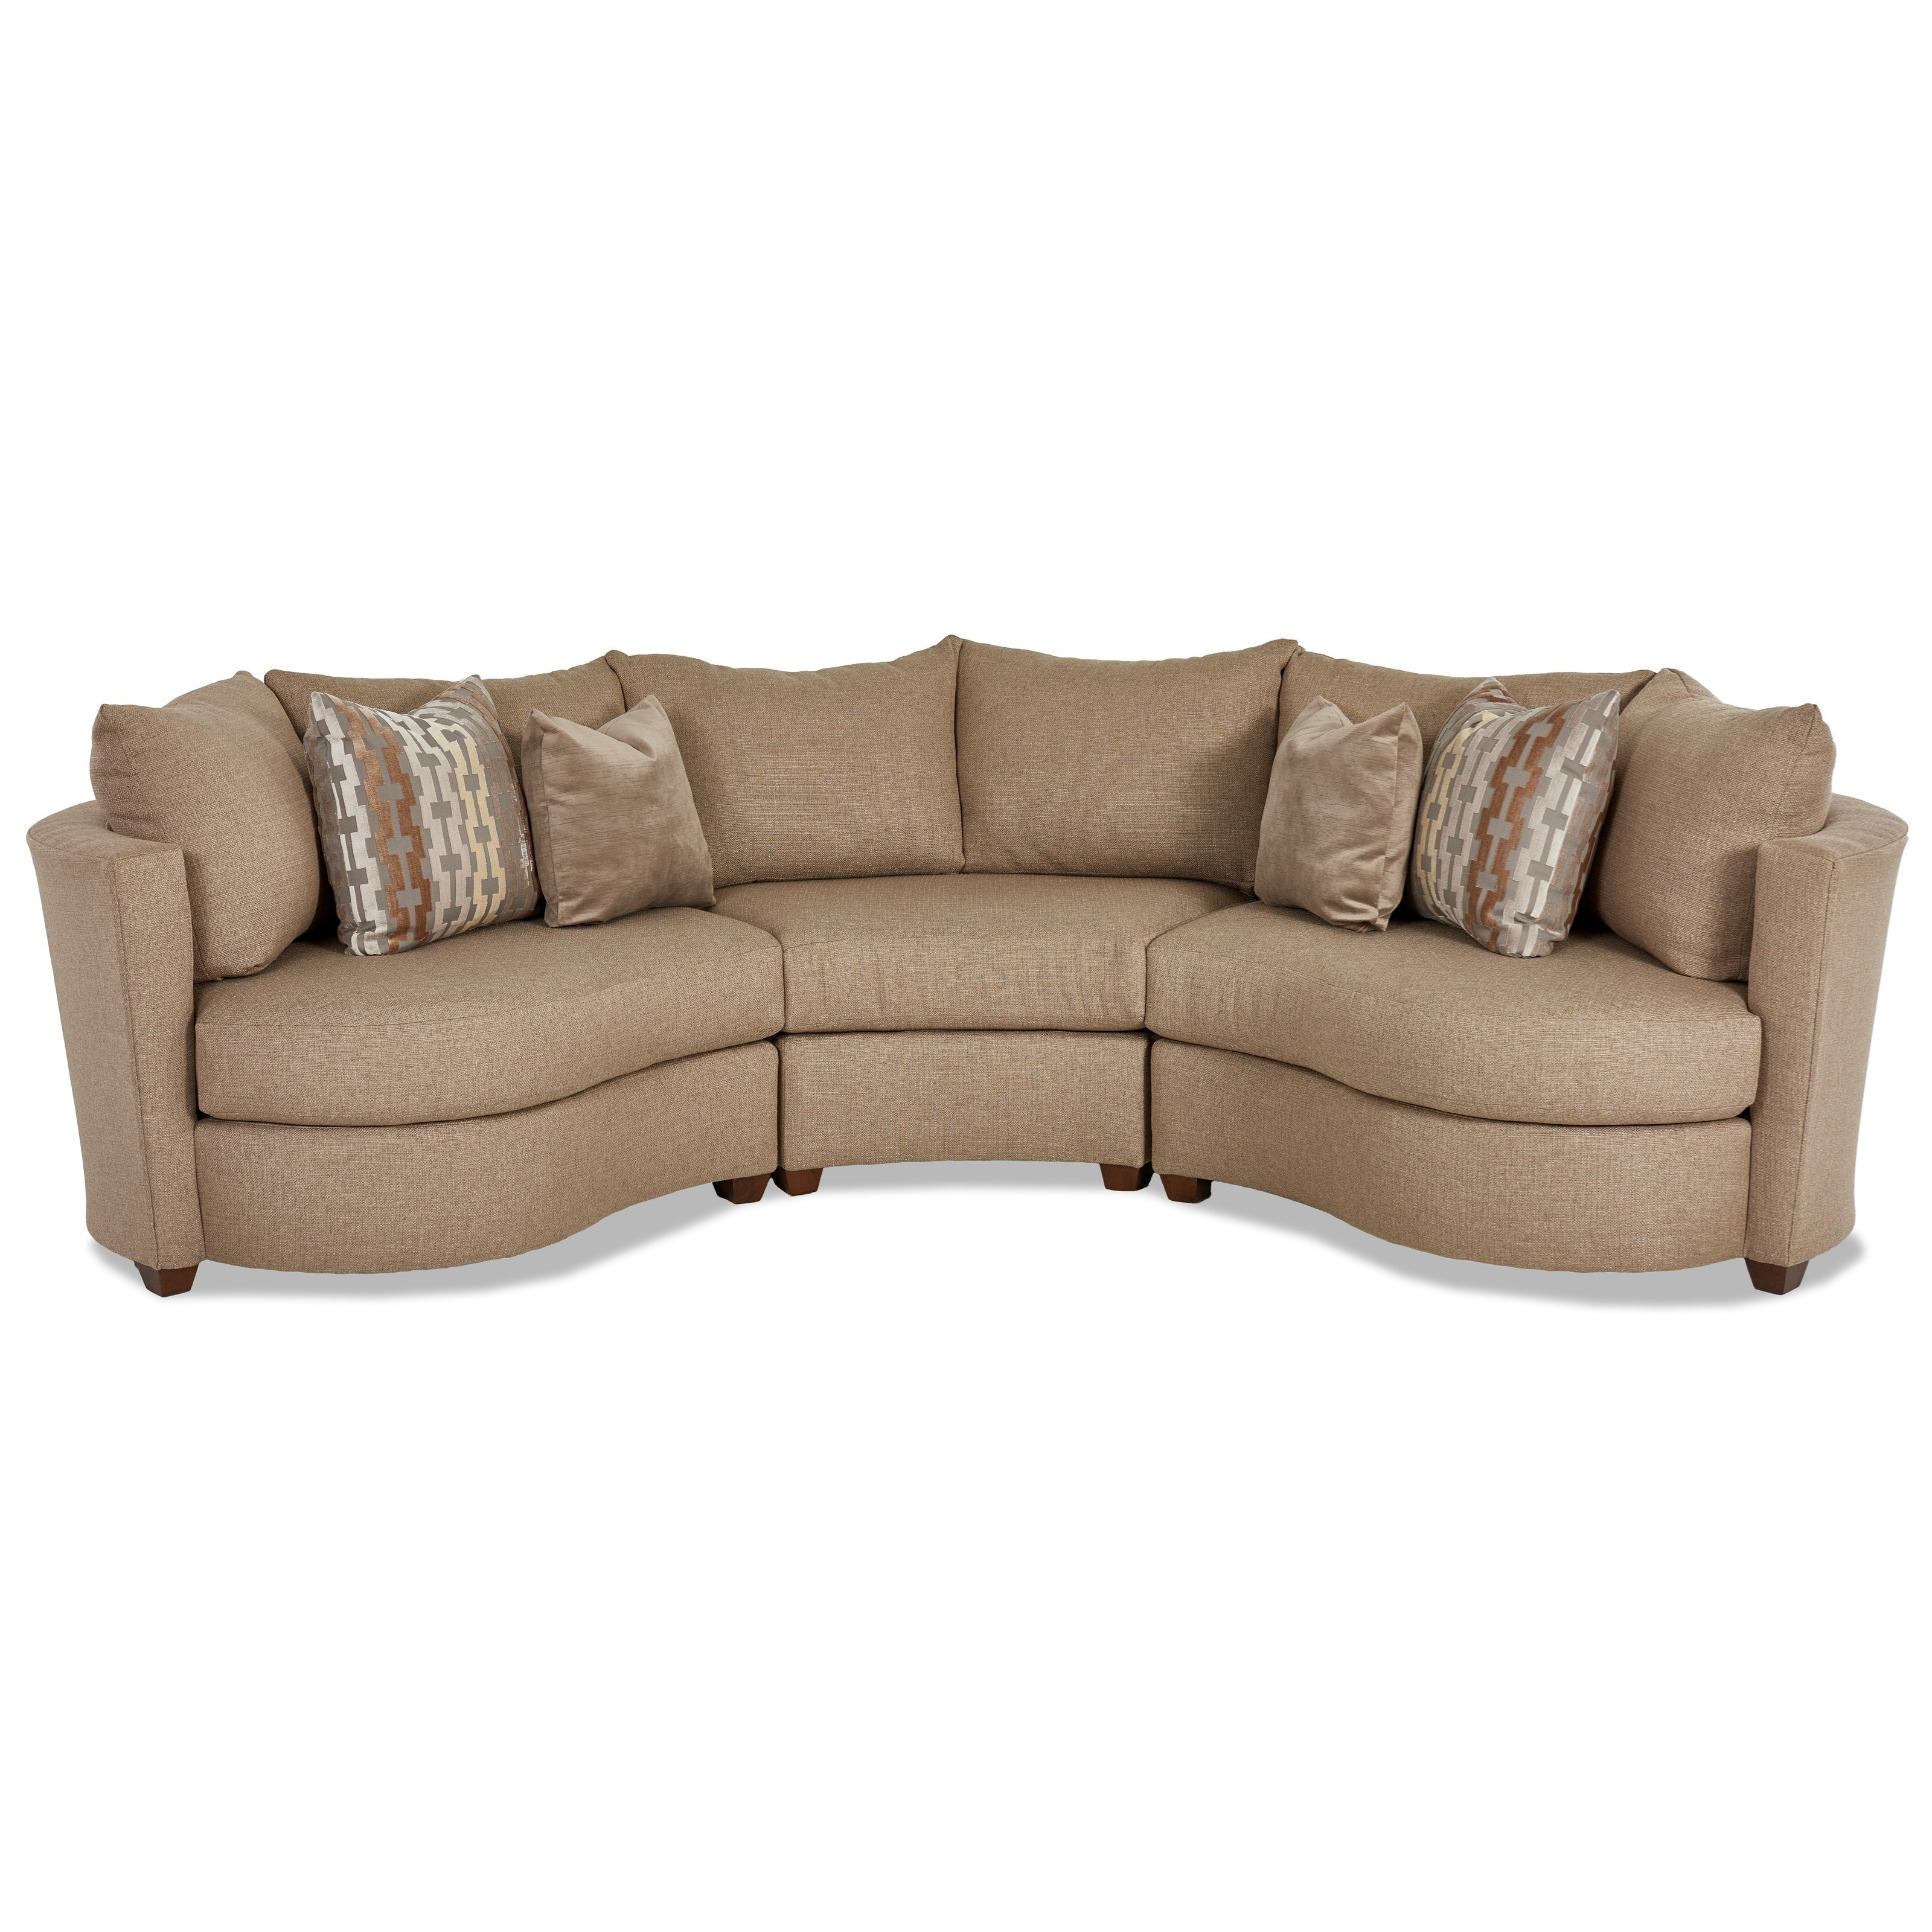 Klaussner LIA Sectional - Item Number: K85200L BC+WEDGE+R BC